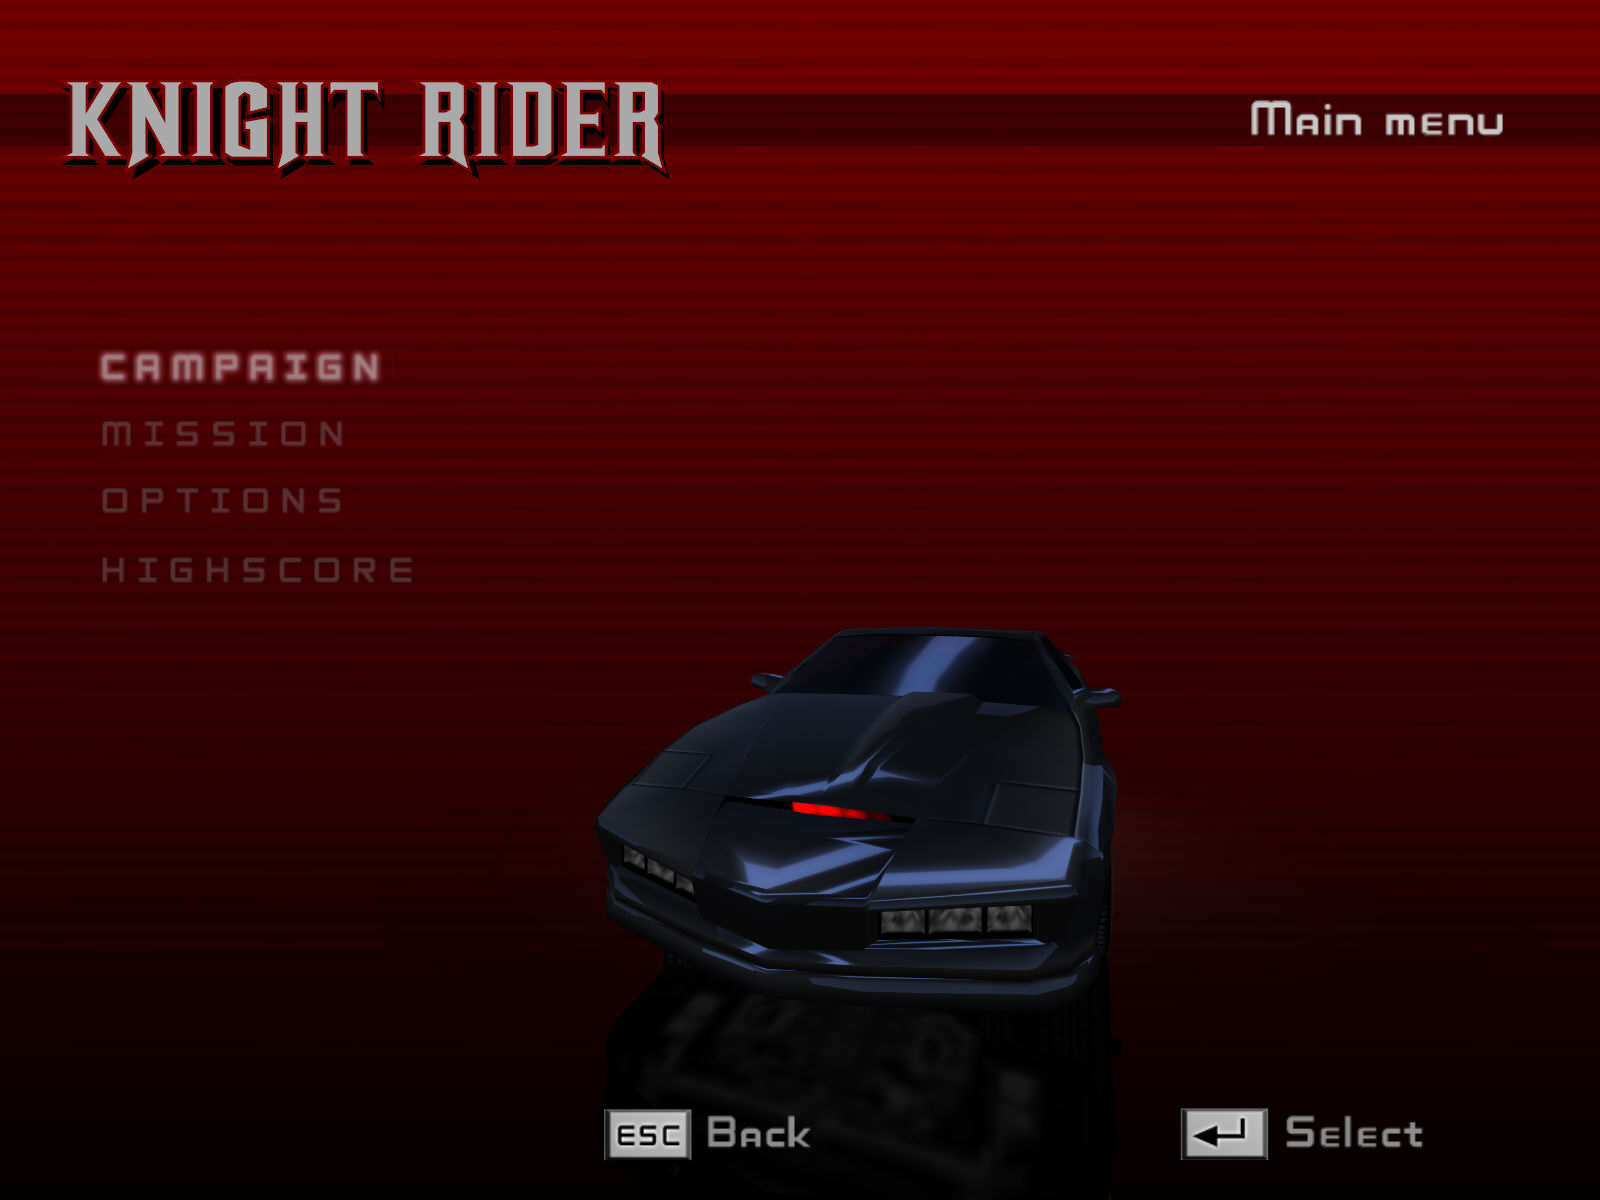 Knight Rider 3gp Mp4 Hd Video Download